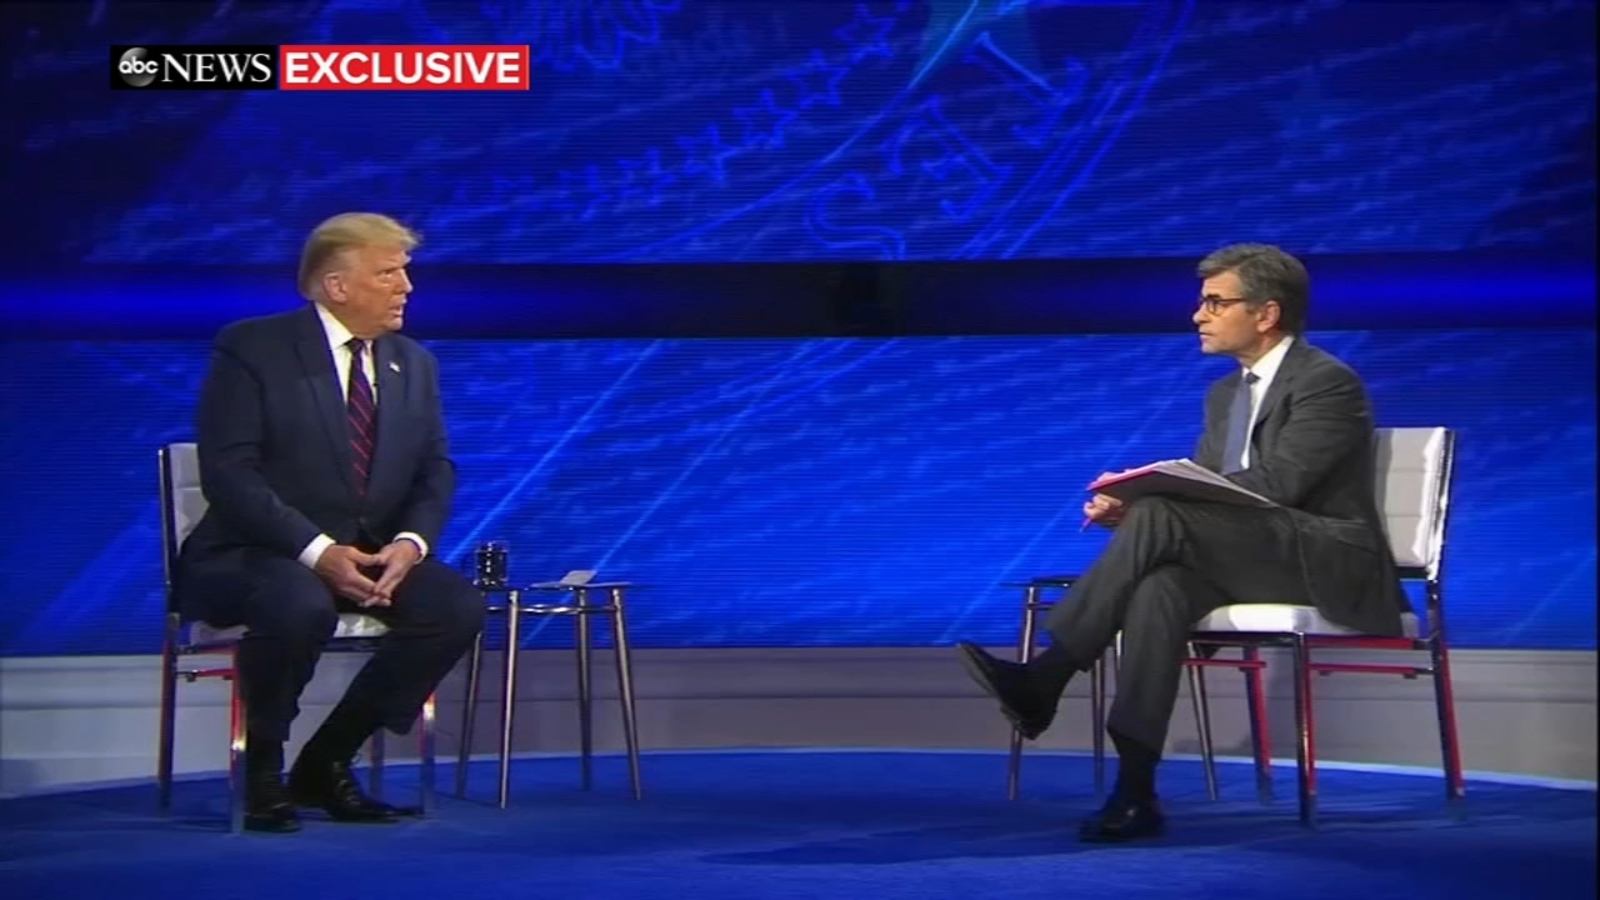 Trump In Philadelphia President Faces Uncommitted Voters During Abc News Town Hall At National Constitution Center Abc13 Houston